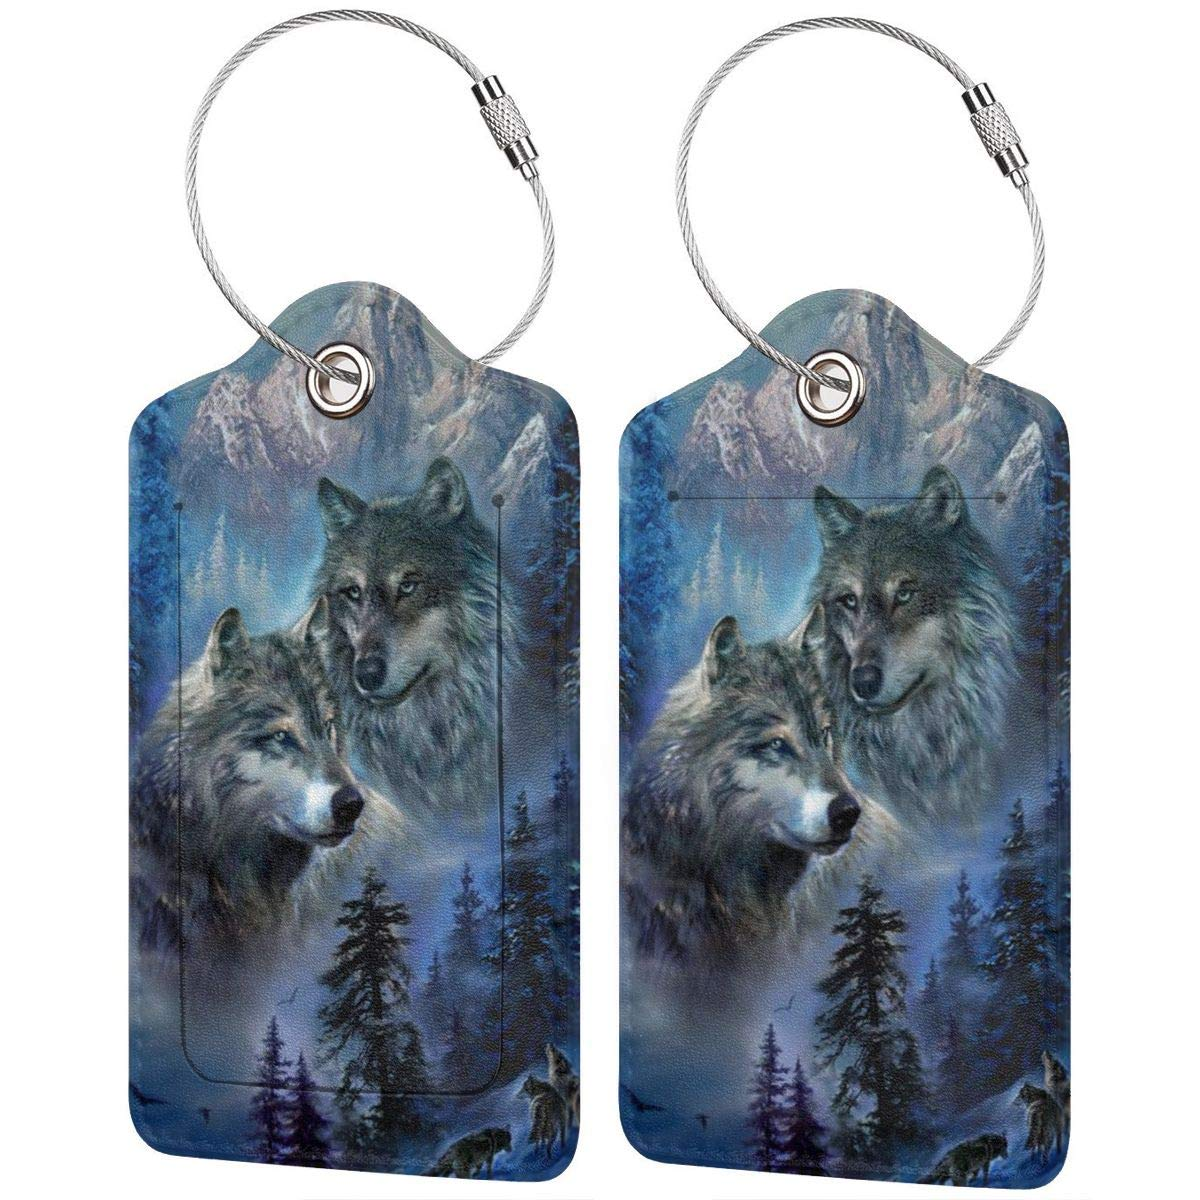 Leather Luggage Tag Howling Wolf Wildlife Animals Luggage Tags For Suitcase Travel Lover Gifts For Men Women 4 PCS